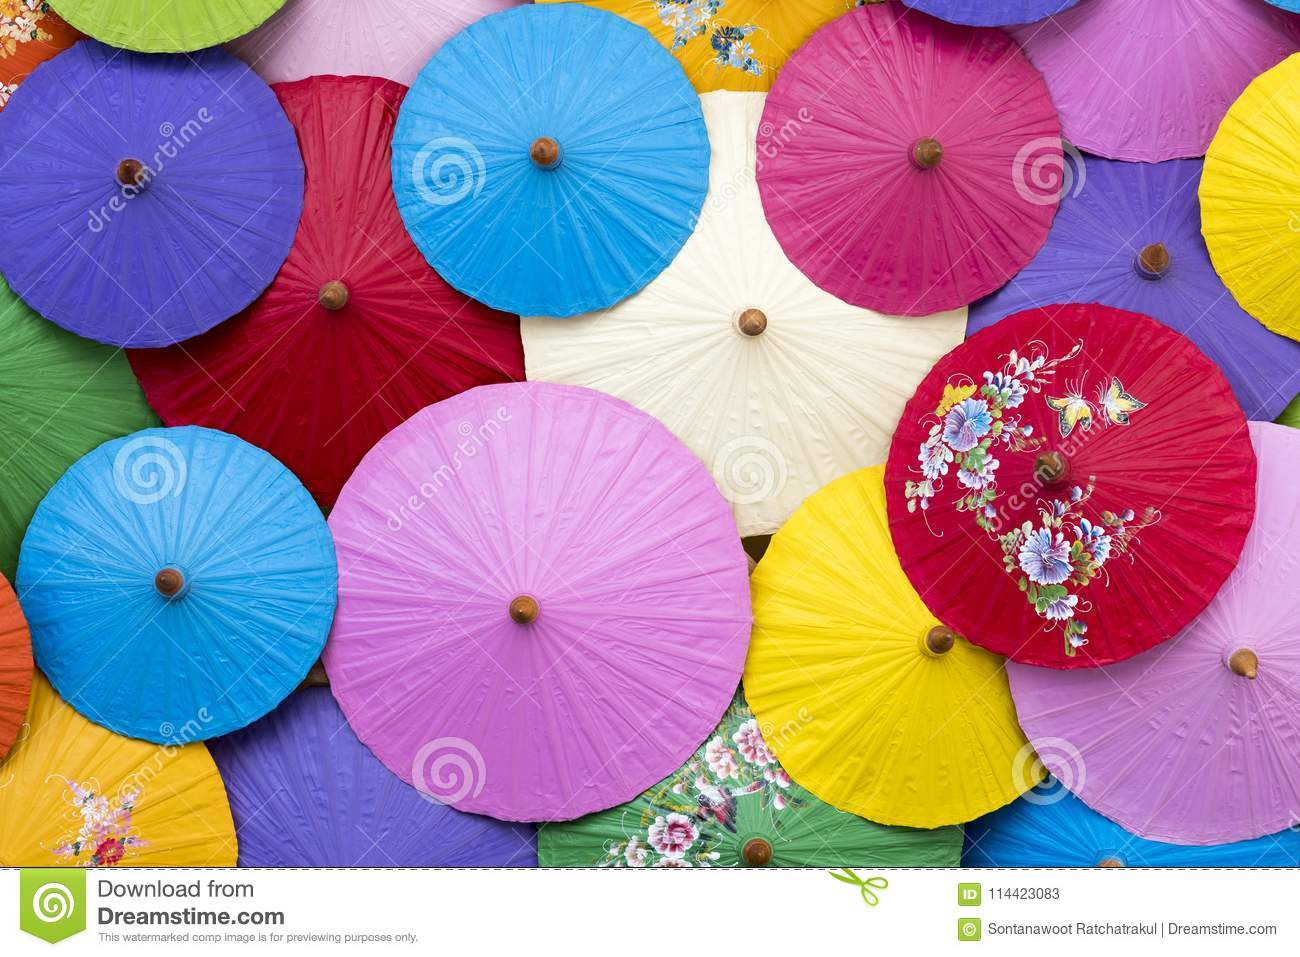 Aerial View Of Colorful Umbrellas Background. Stock Image - Image of ...